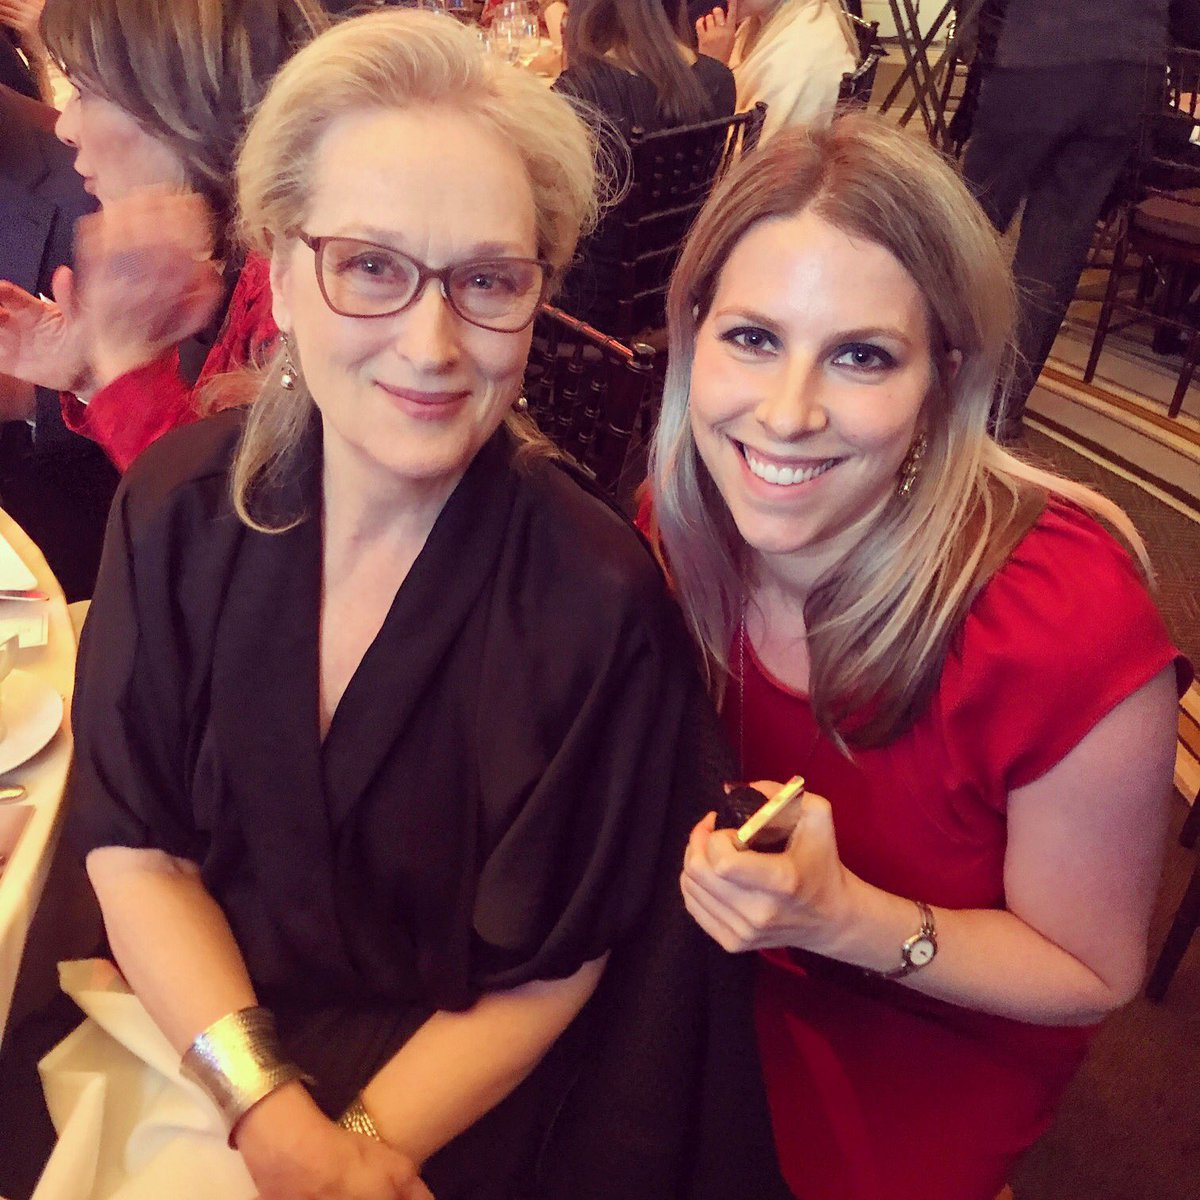 When you meet one of the greatest artists of all time, she&#39;s so genuinely kind, and she&#39;s a press freedom advocate too! #MerylStreep #IFPA @pressfreedom<br>http://pic.twitter.com/DAA6EgpHJq